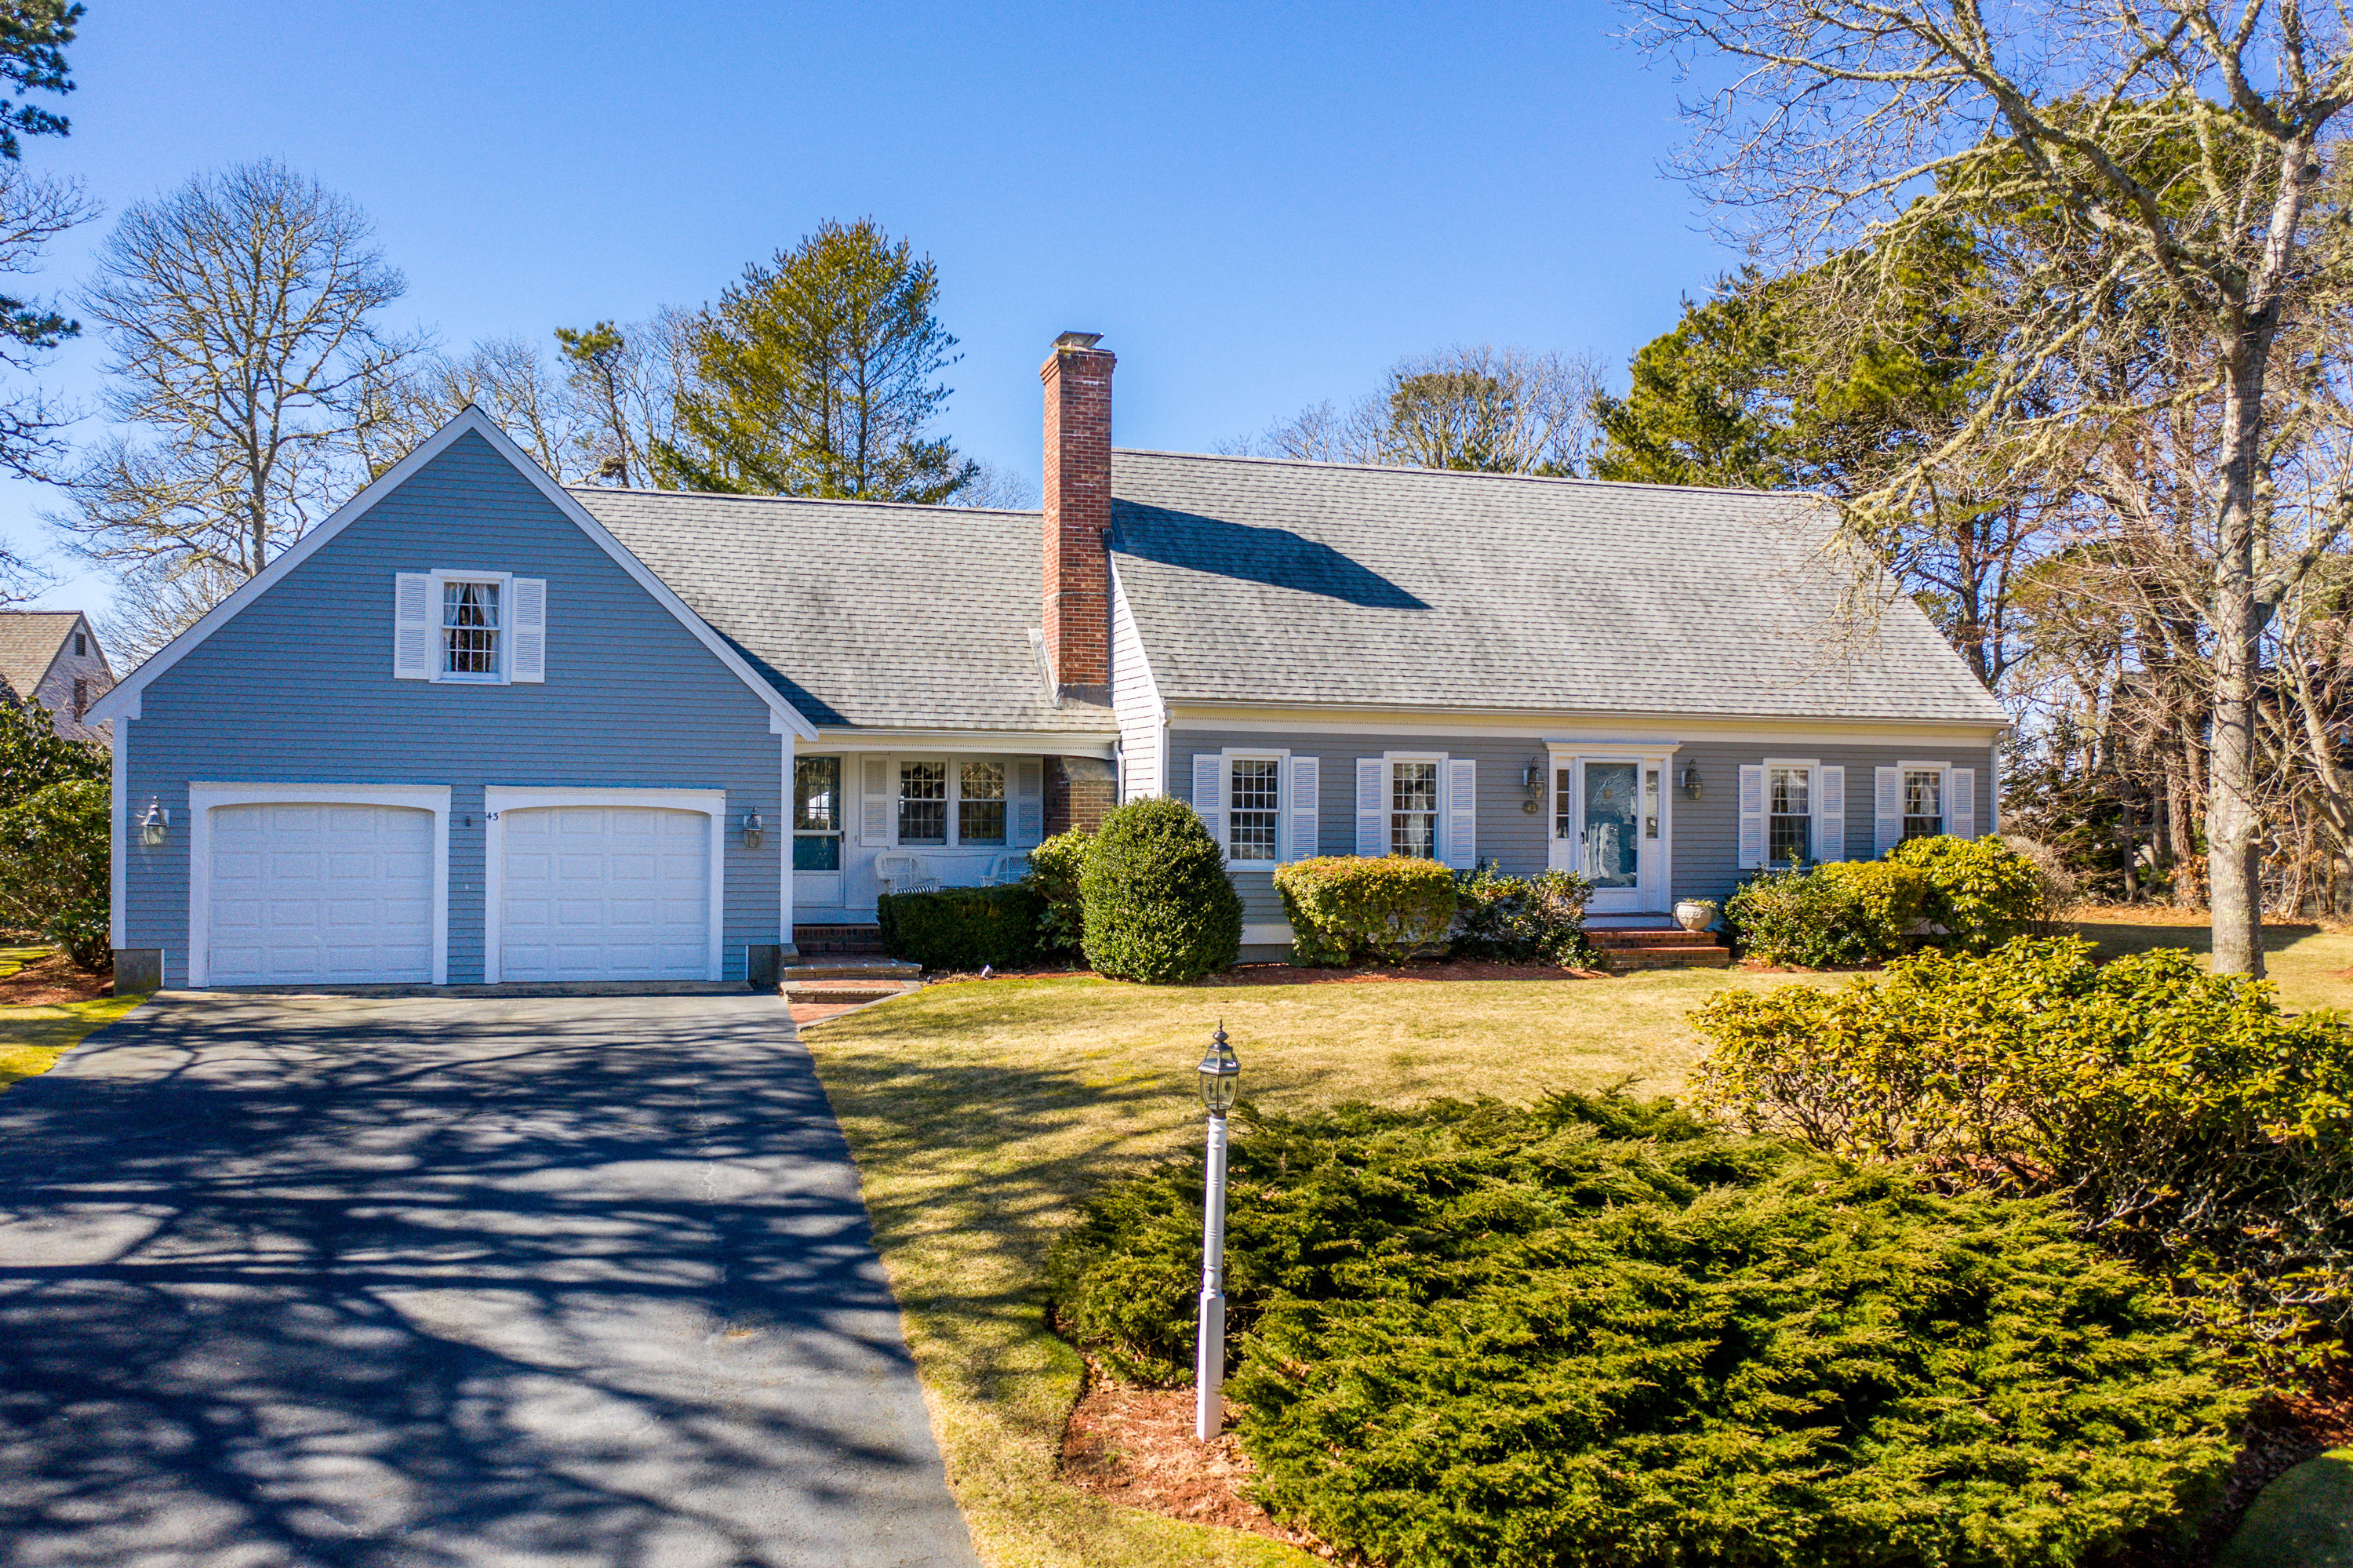 click to view more details 43 Schooner Drive, Harwich Port, MA 02646